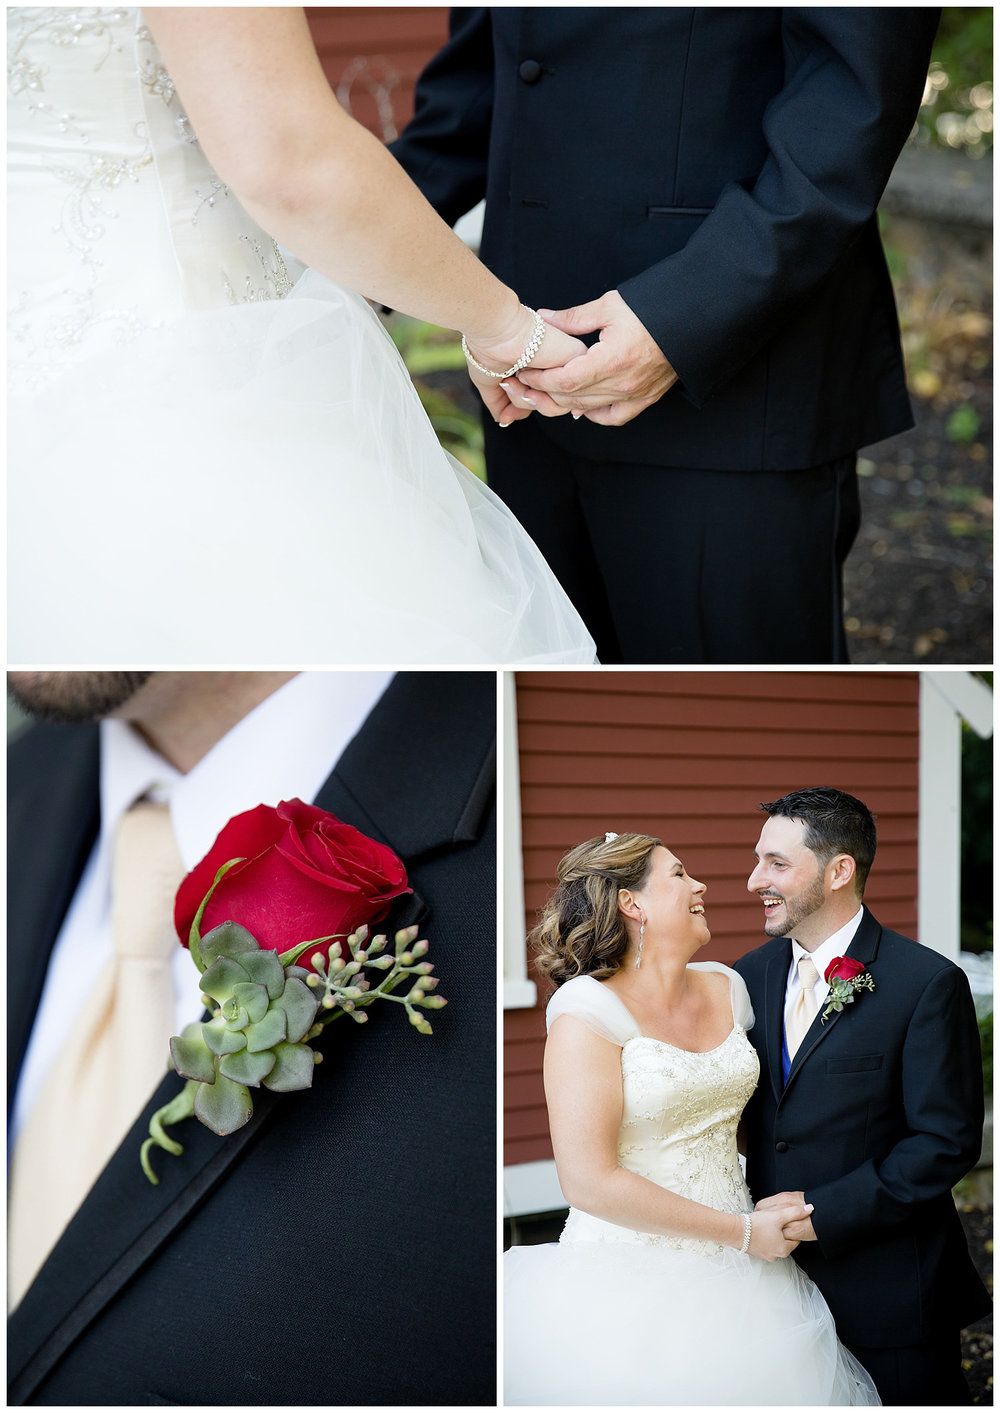 smith-barn-brooksby-farm-wedding-26-north-studios-boston-wedding-photographer-014.jpg